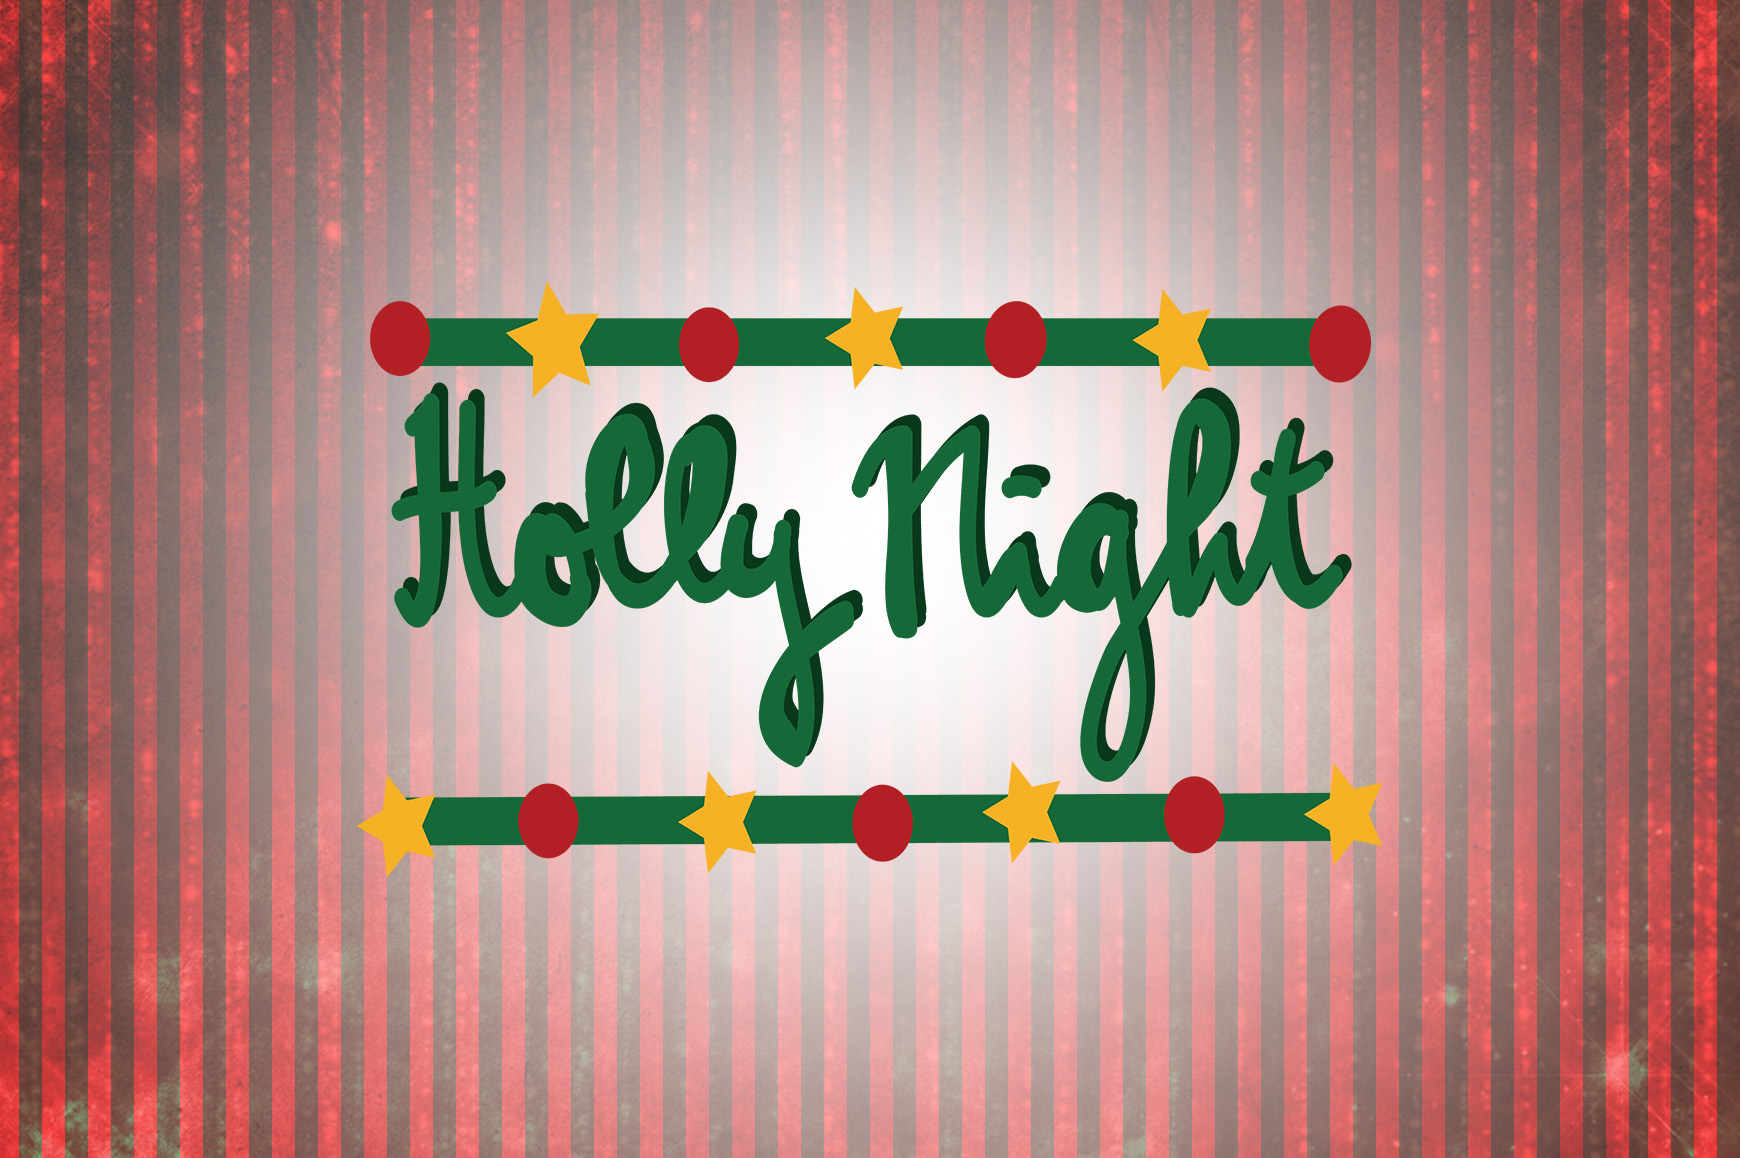 Download Free Holly Night Christmas Quotes Graphic By Wienscollection for Cricut Explore, Silhouette and other cutting machines.